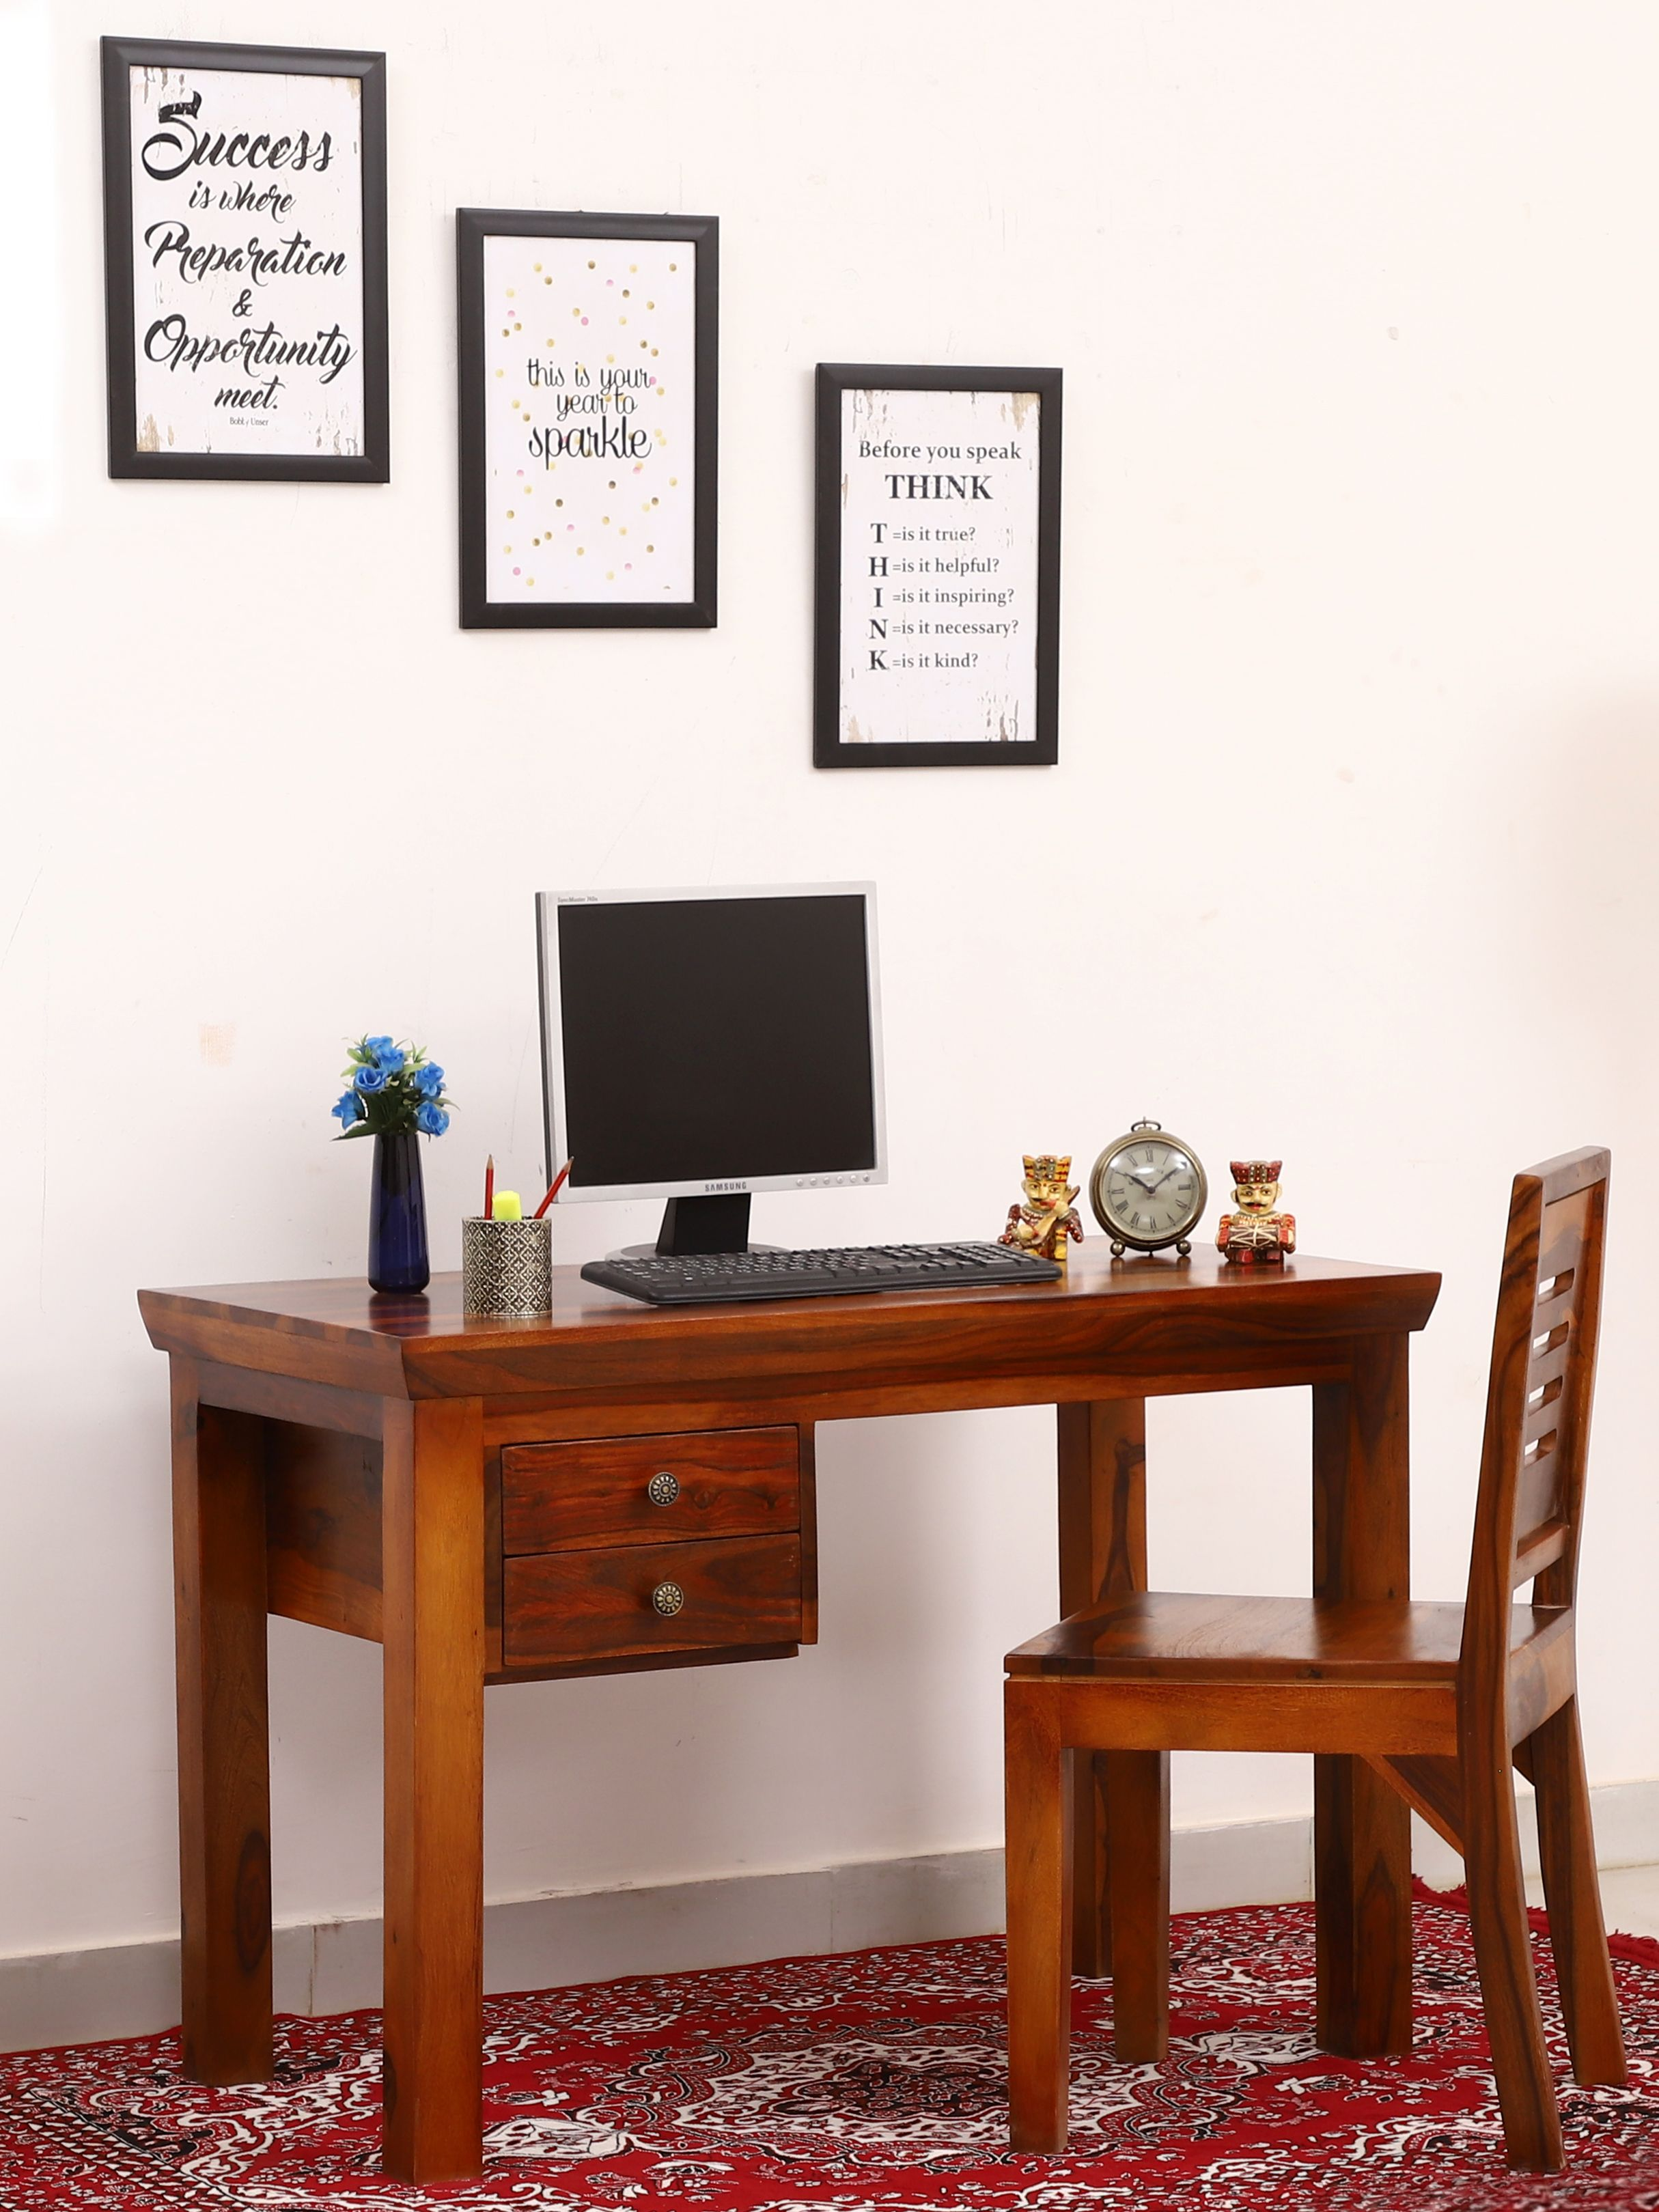 study table with chair on wooden study chair in bangalore sheesham wood furniture bangalore soild wood furniture bangalo wooden study table furniture design table study table designs sheesham wood furniture bangalore